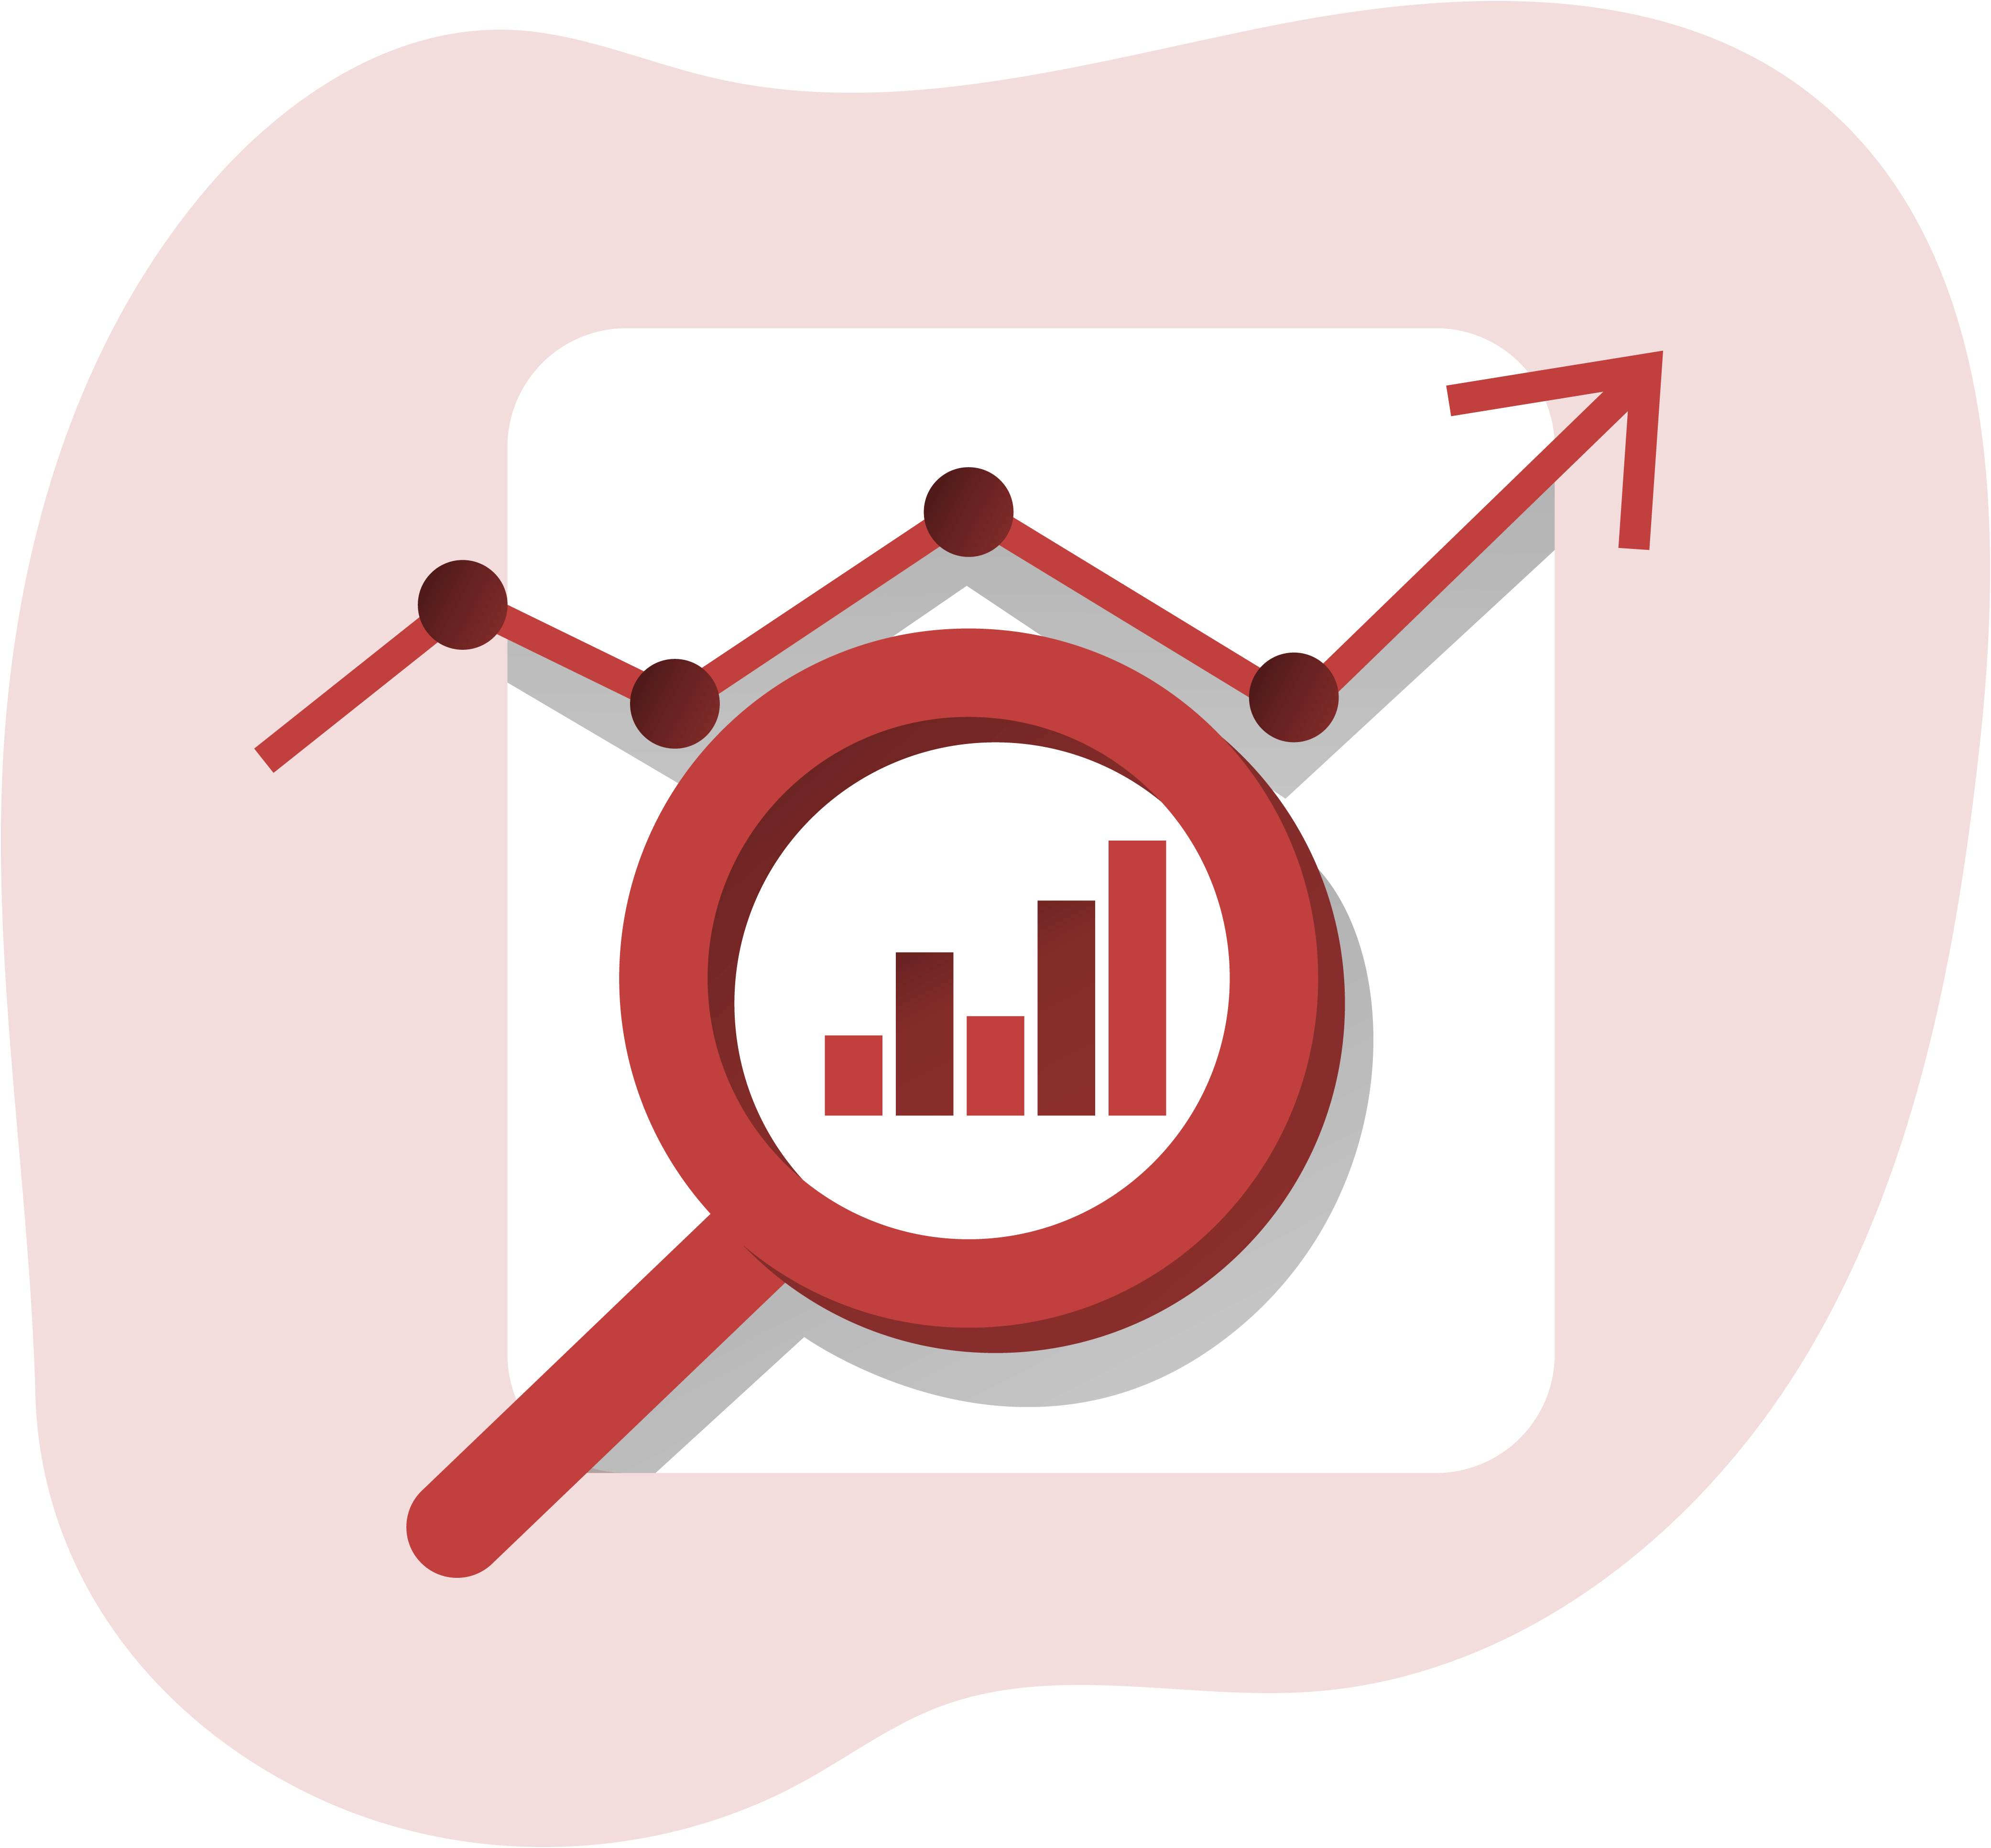 Track and log your website's traffic with the TrafficTracker PHP class and Google Analytics